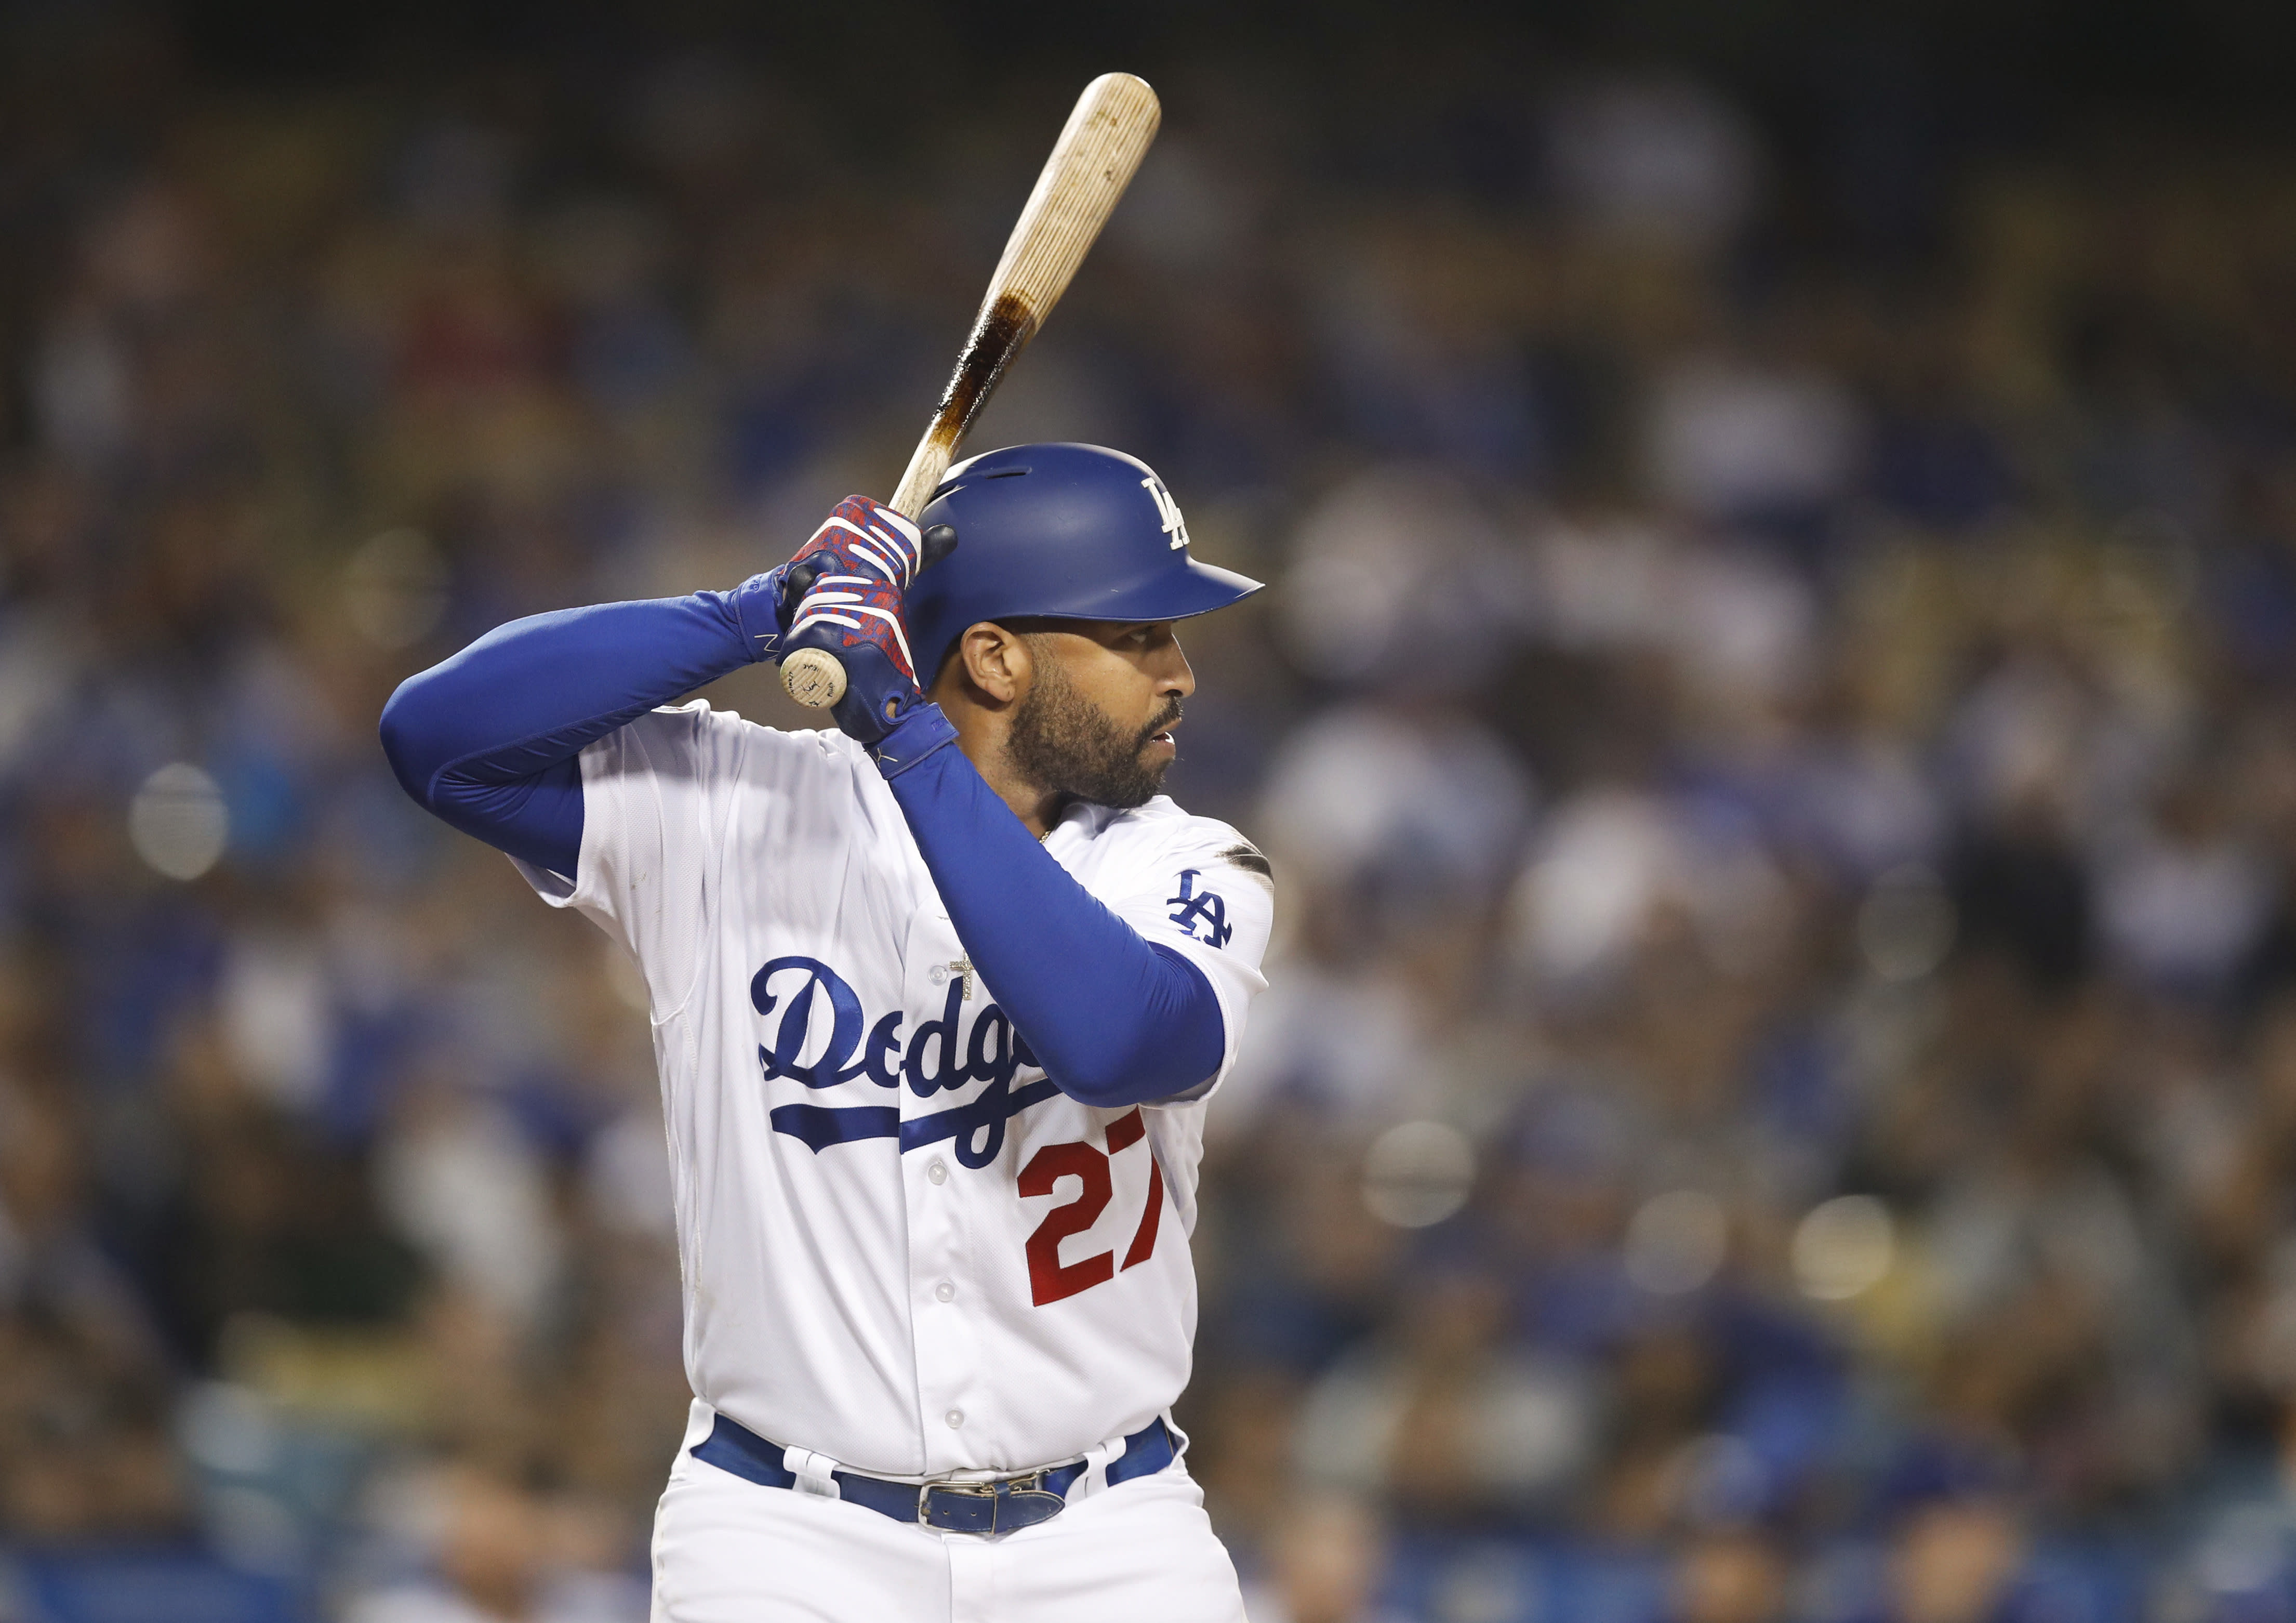 Former All-Star Kemp released by Mets after stint in minors